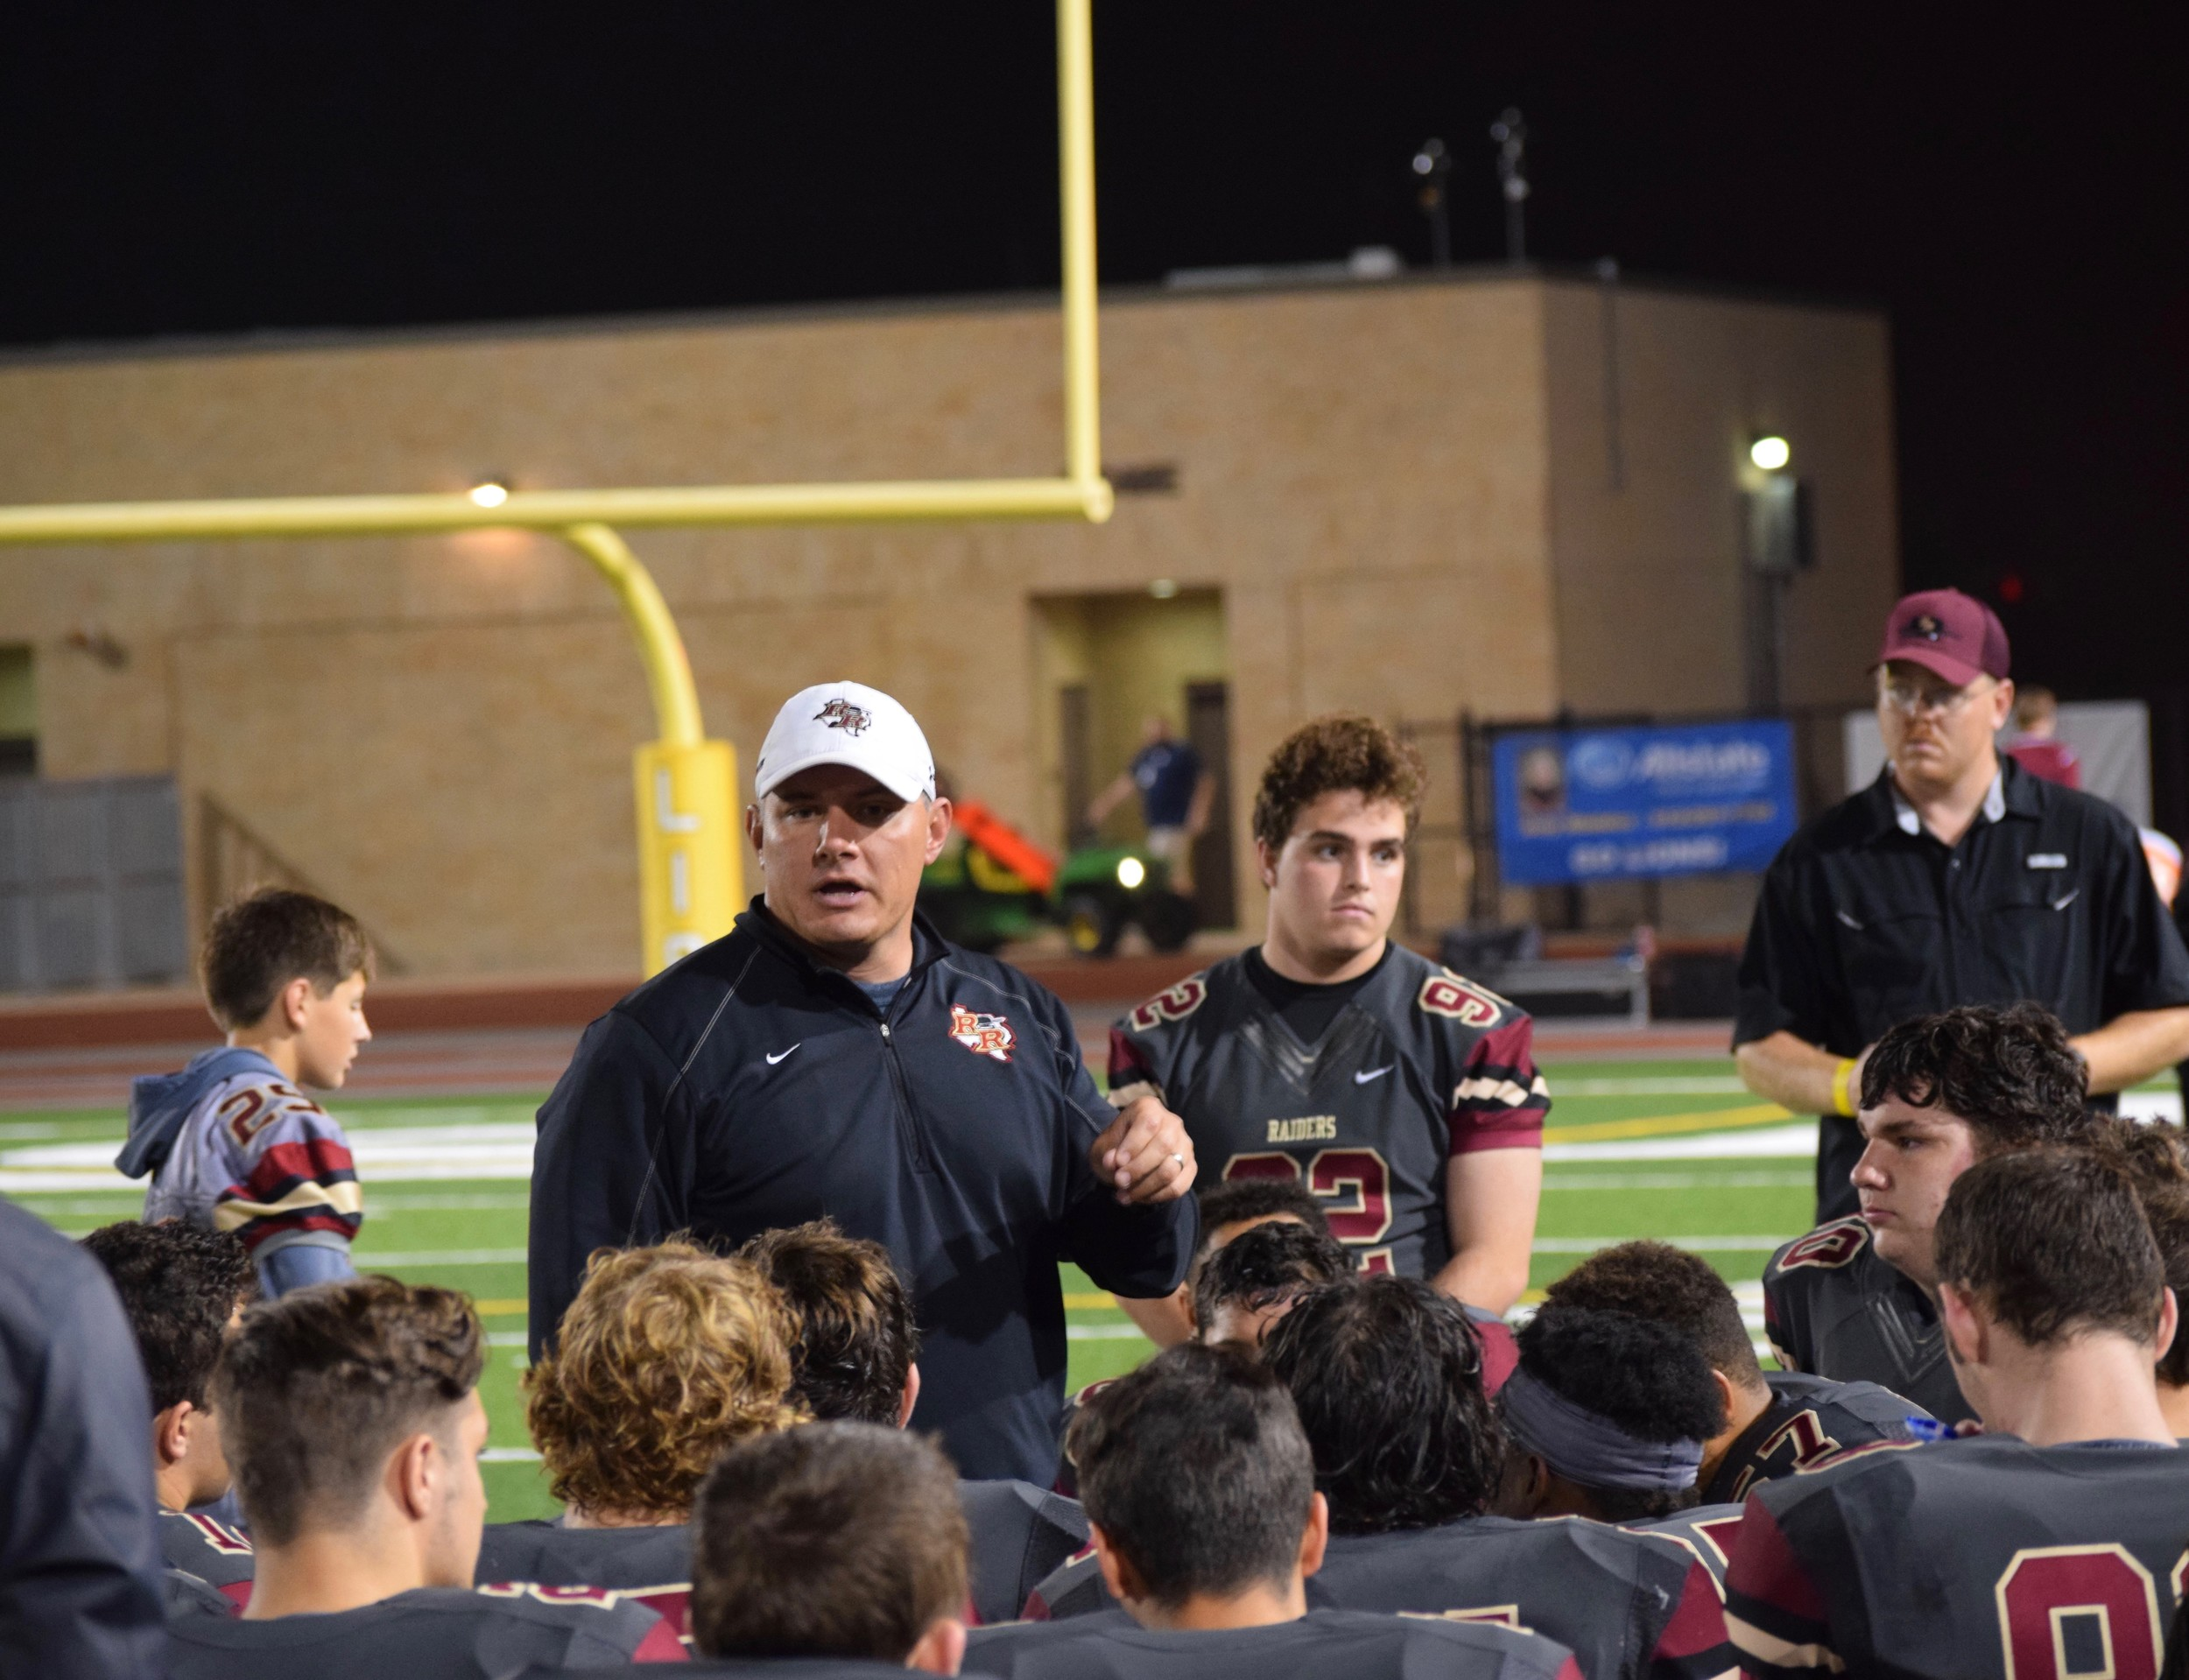 Rouse and head coach Josh Mann scored 21 unanswered points against Westwood on Friday to beat the Warriors 35-21. The Raiders host East View Friday at 7:30 p.m.